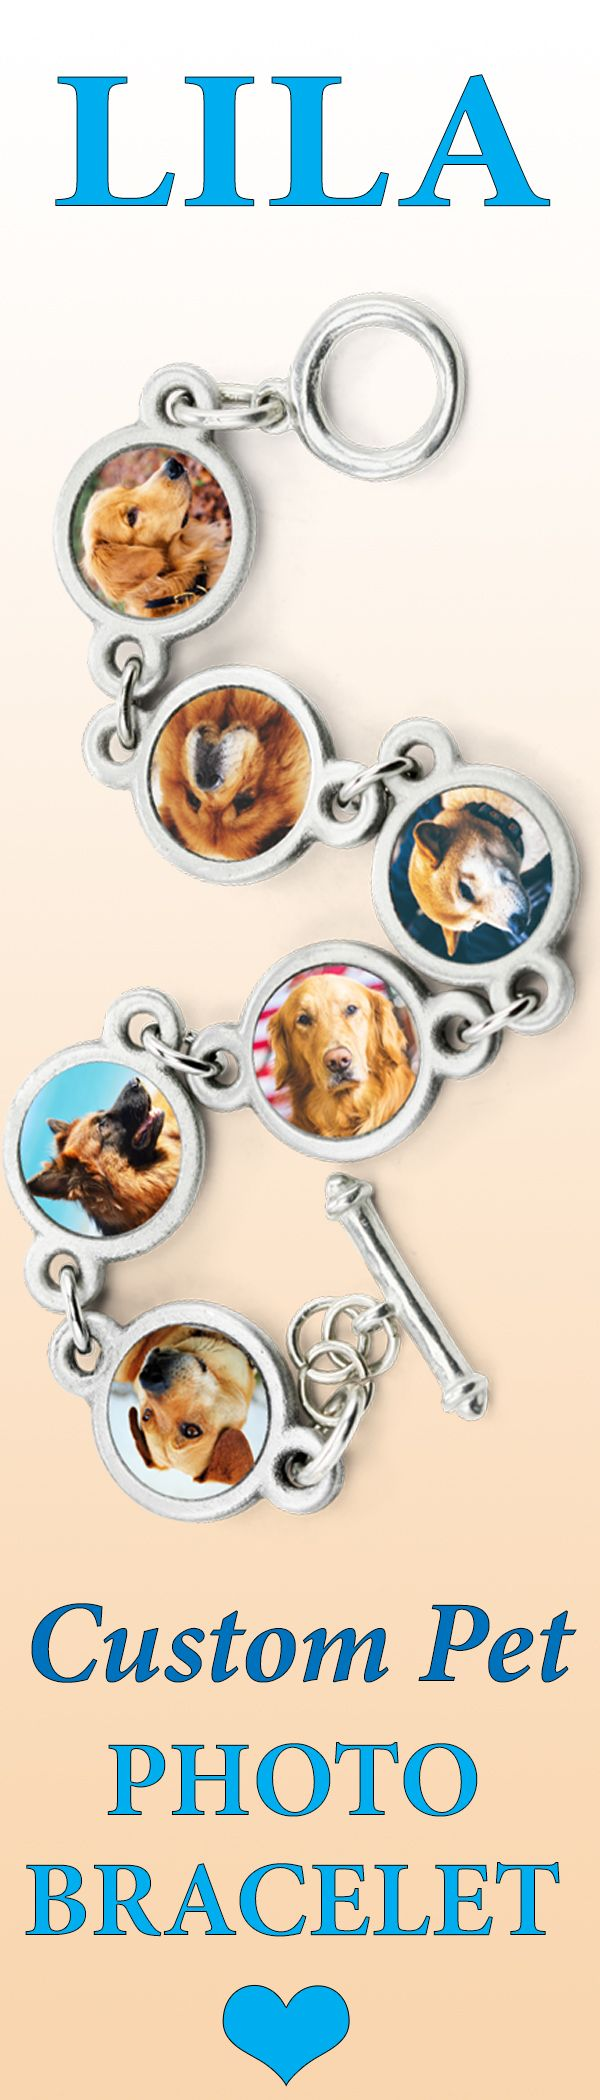 The Lila Photo Bracelet https://zeldassong.com/products/lila-charm-photo-bracelet?variant=33780529354 is delicately proportioned to mix and match photos of your dog or dogs with dog bone charms for a custom design.